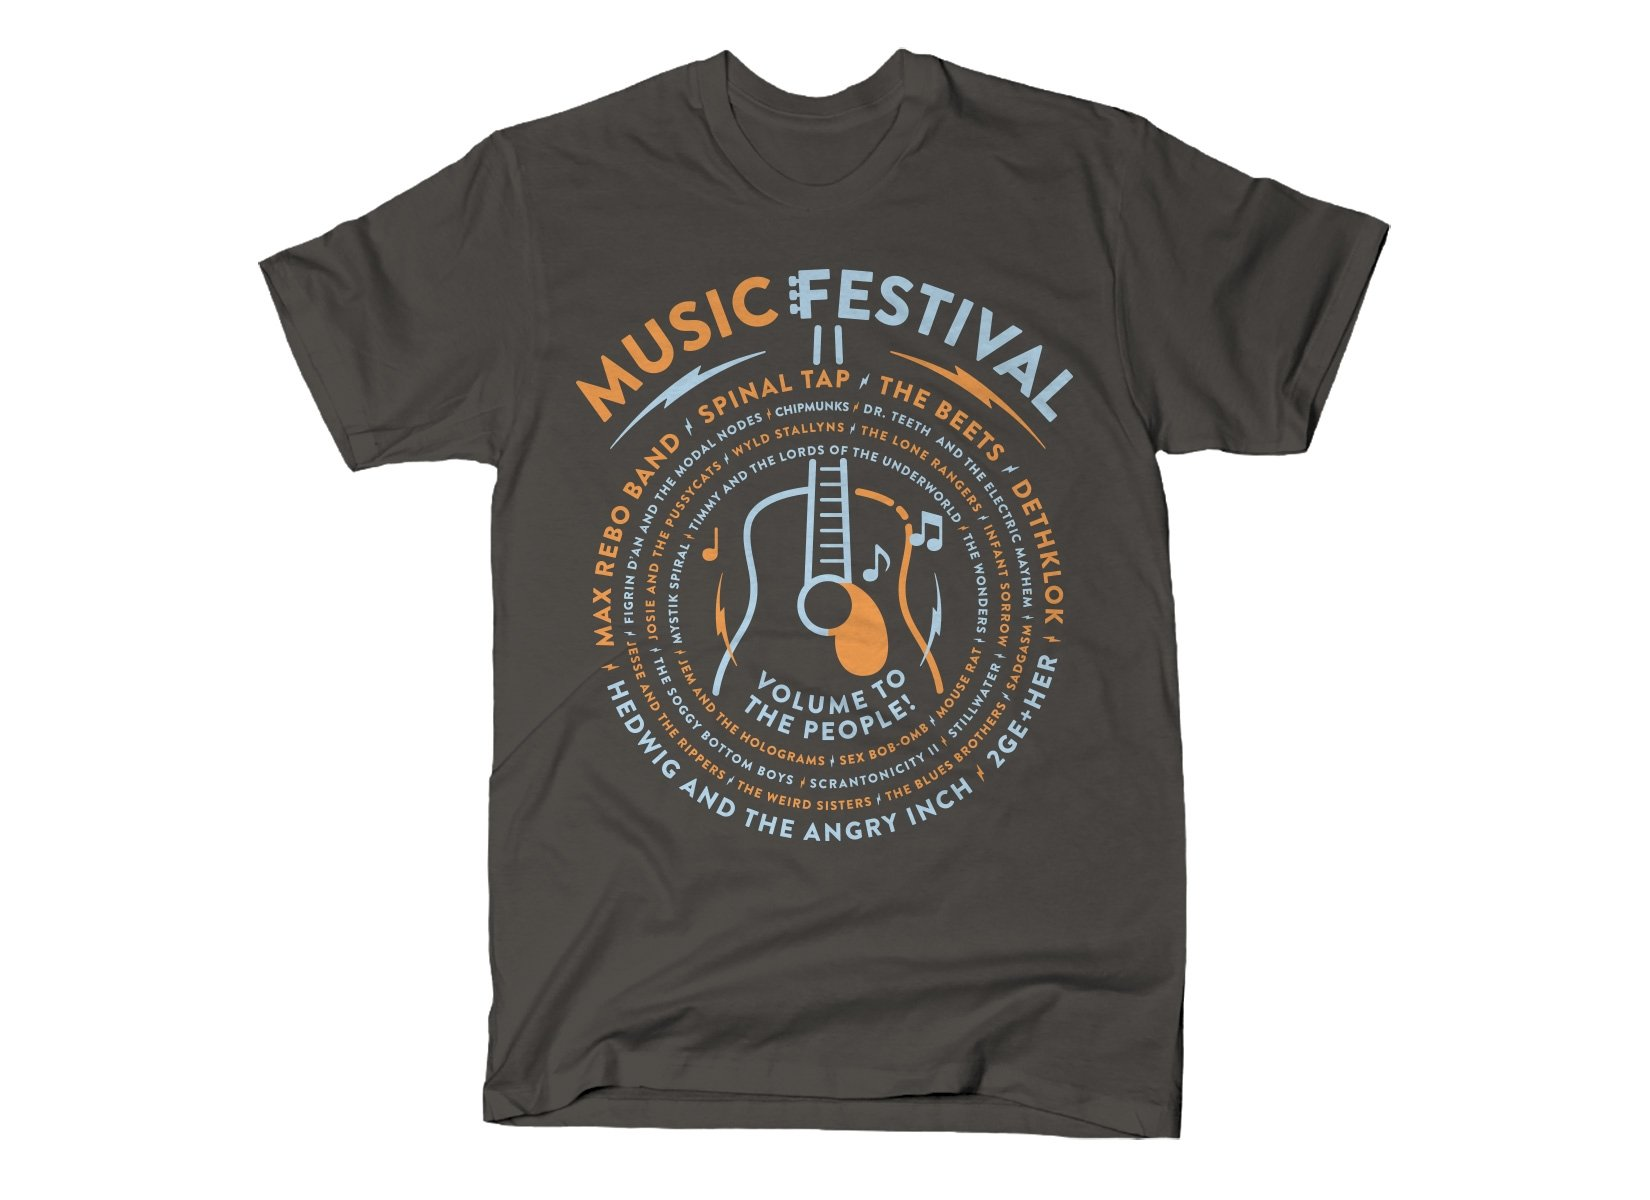 Music Festival on Mens T-Shirt